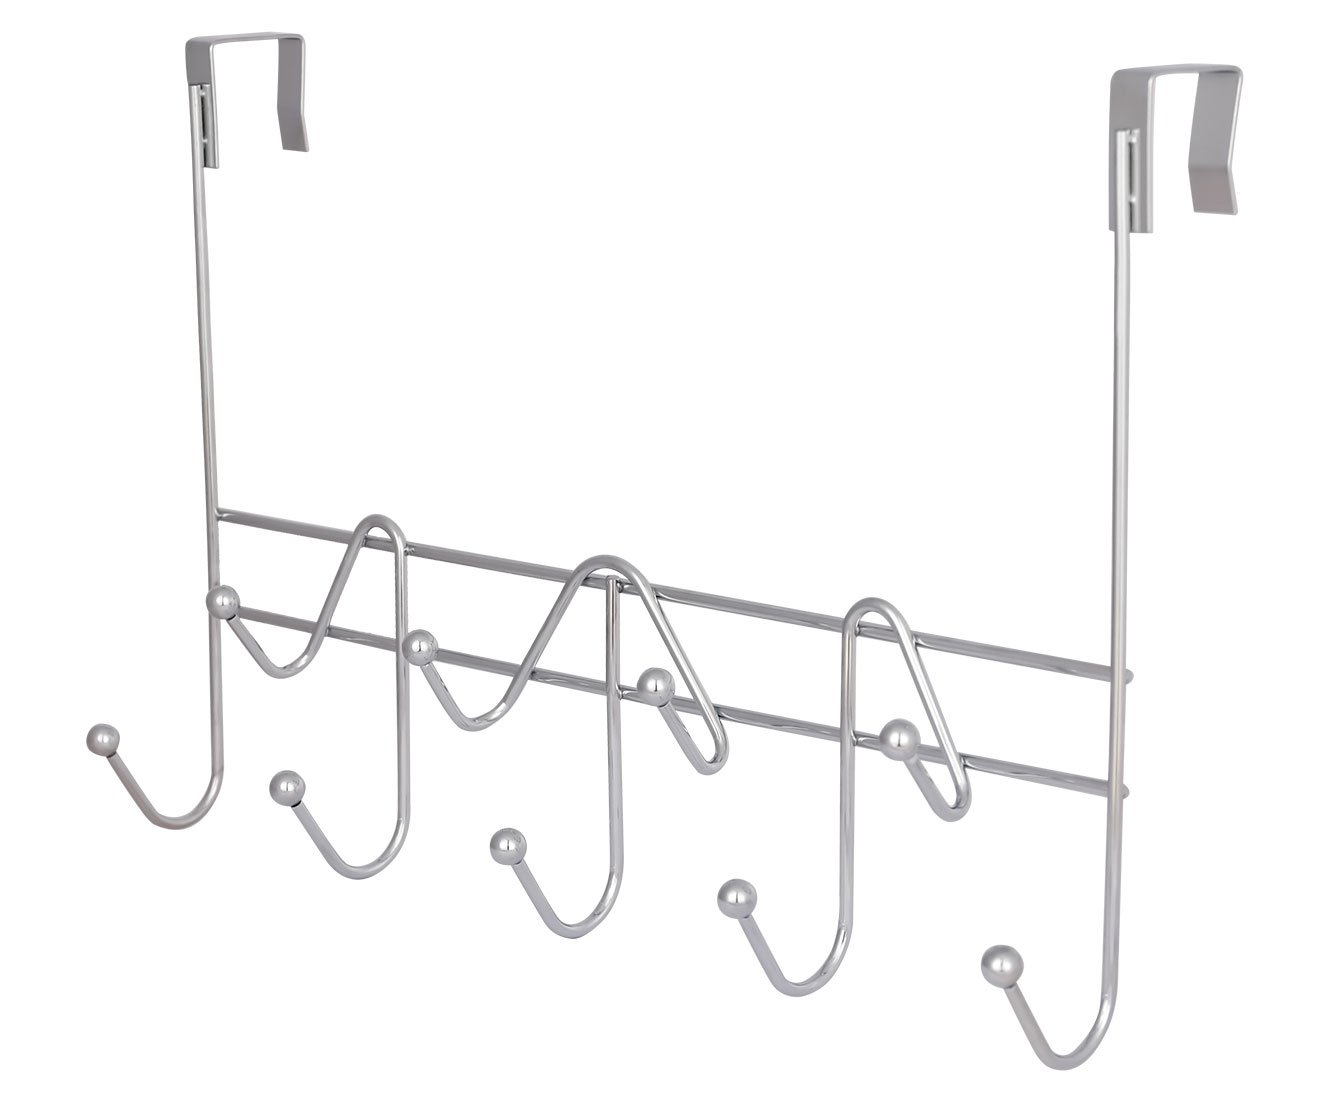 ESYLIFE Hooks Over the Door Hook Organizer Rack Hanging Towel Rack Over Door, 9 Hooks, Chrome Finish ShiYuan SYNCHKG095184